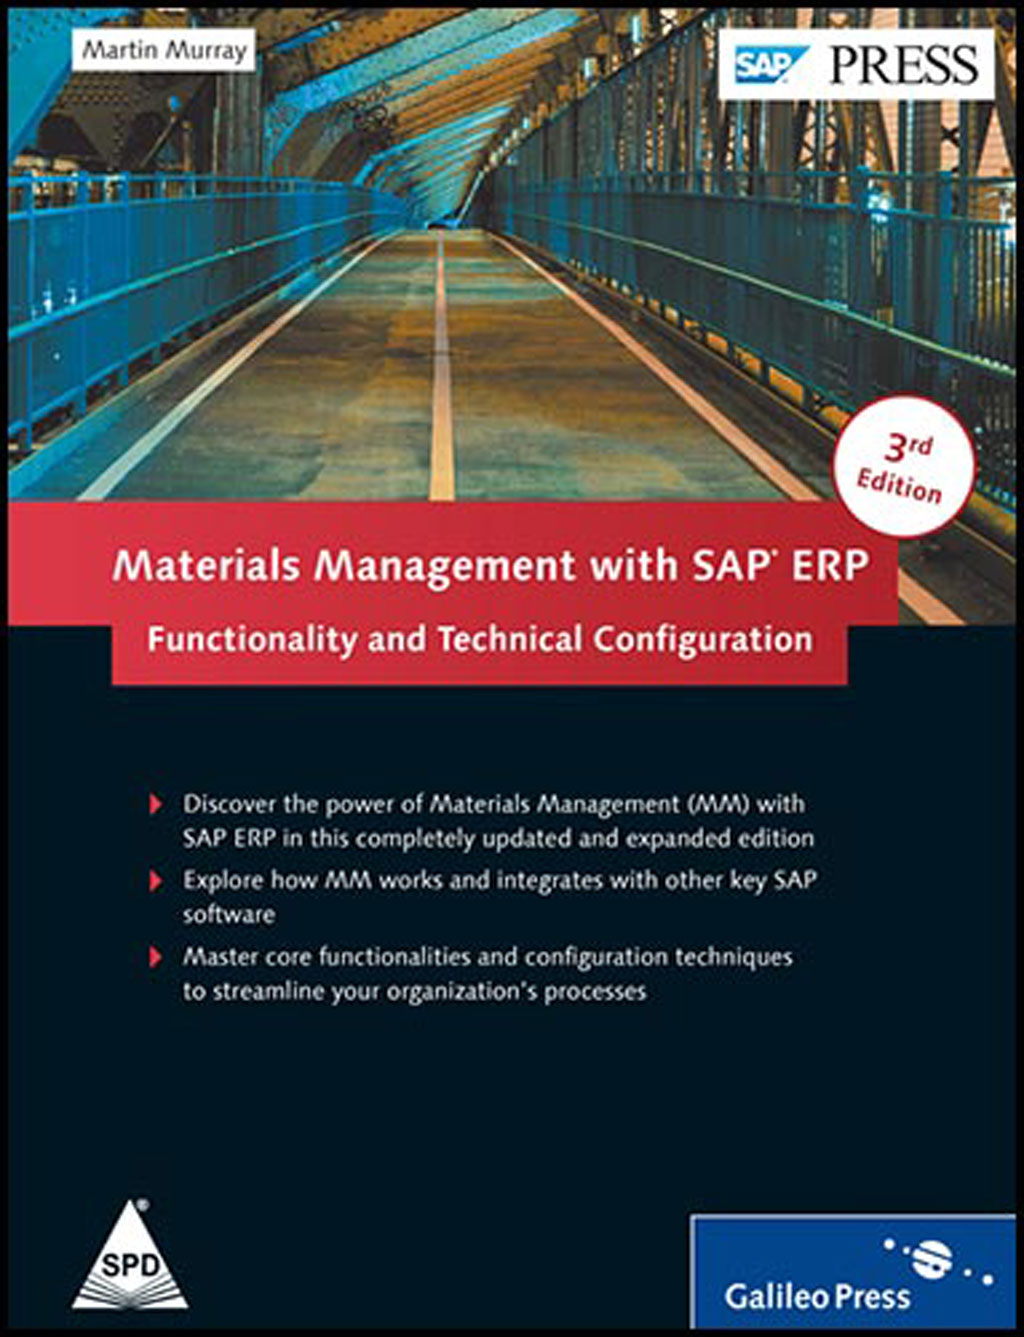 Materials Management with SAP ERP, 3rd Edition